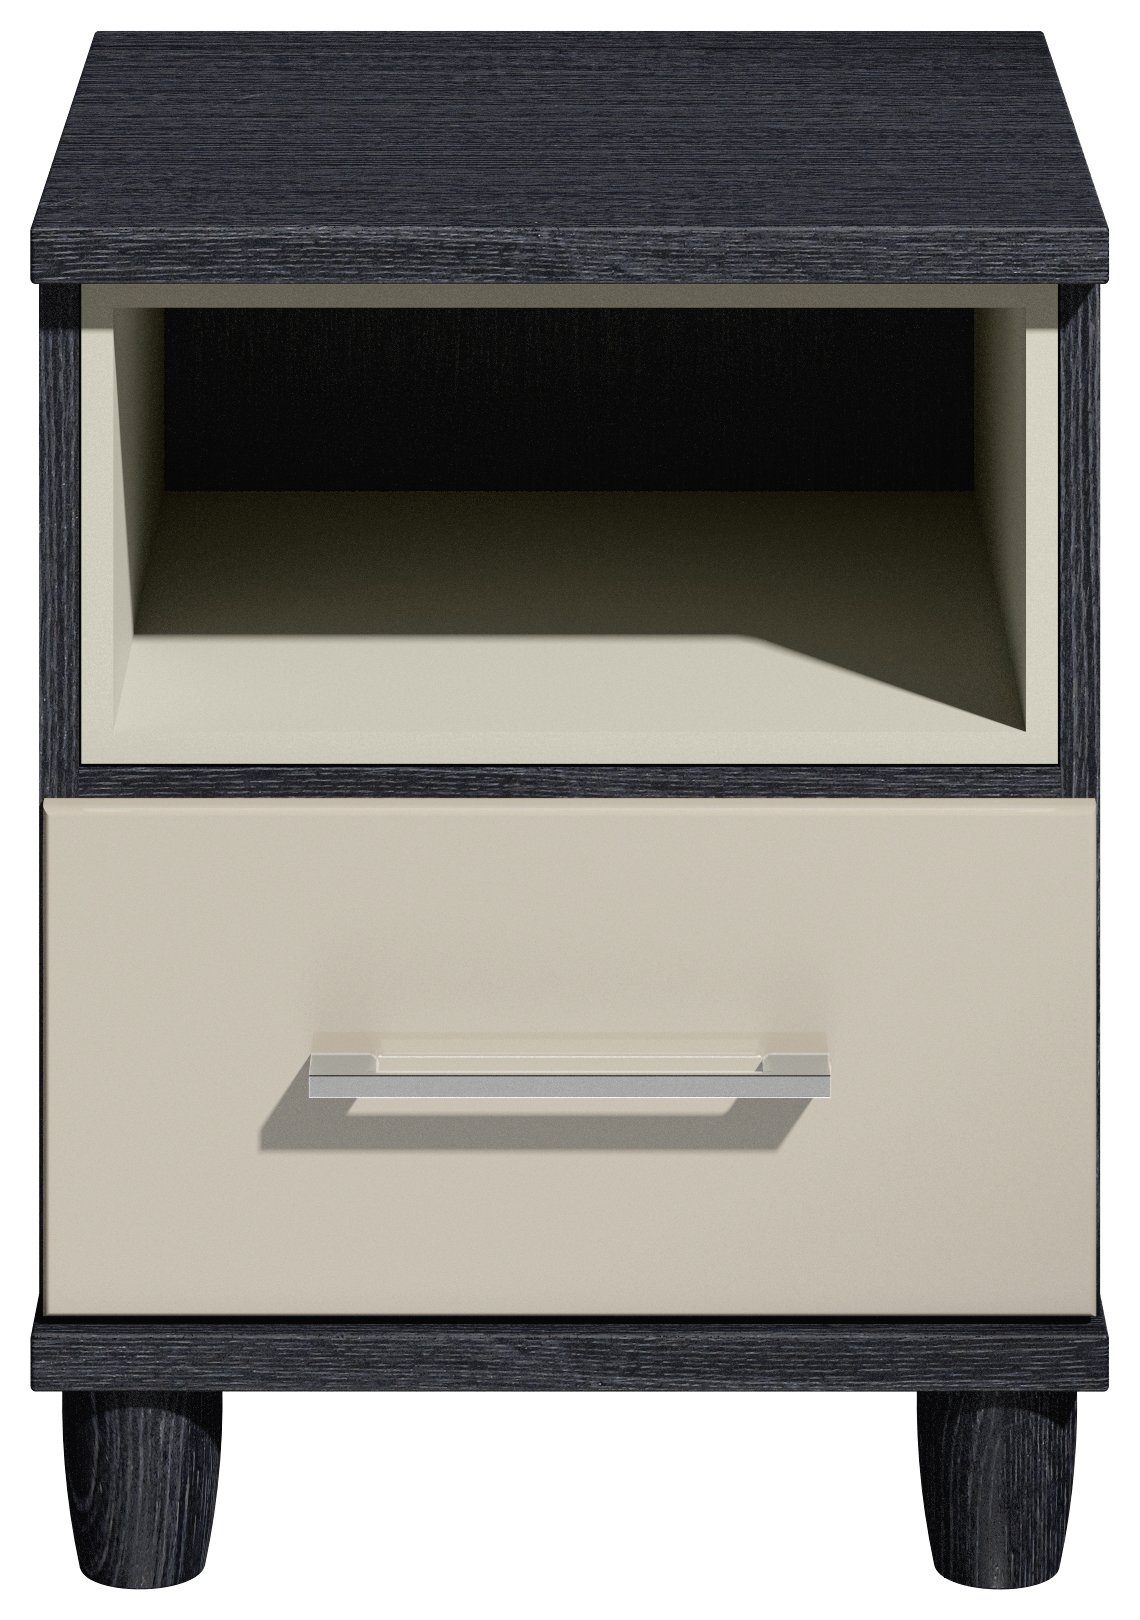 Dulcie 1 Drawer Bedside Chest - Black and Grey Gloss